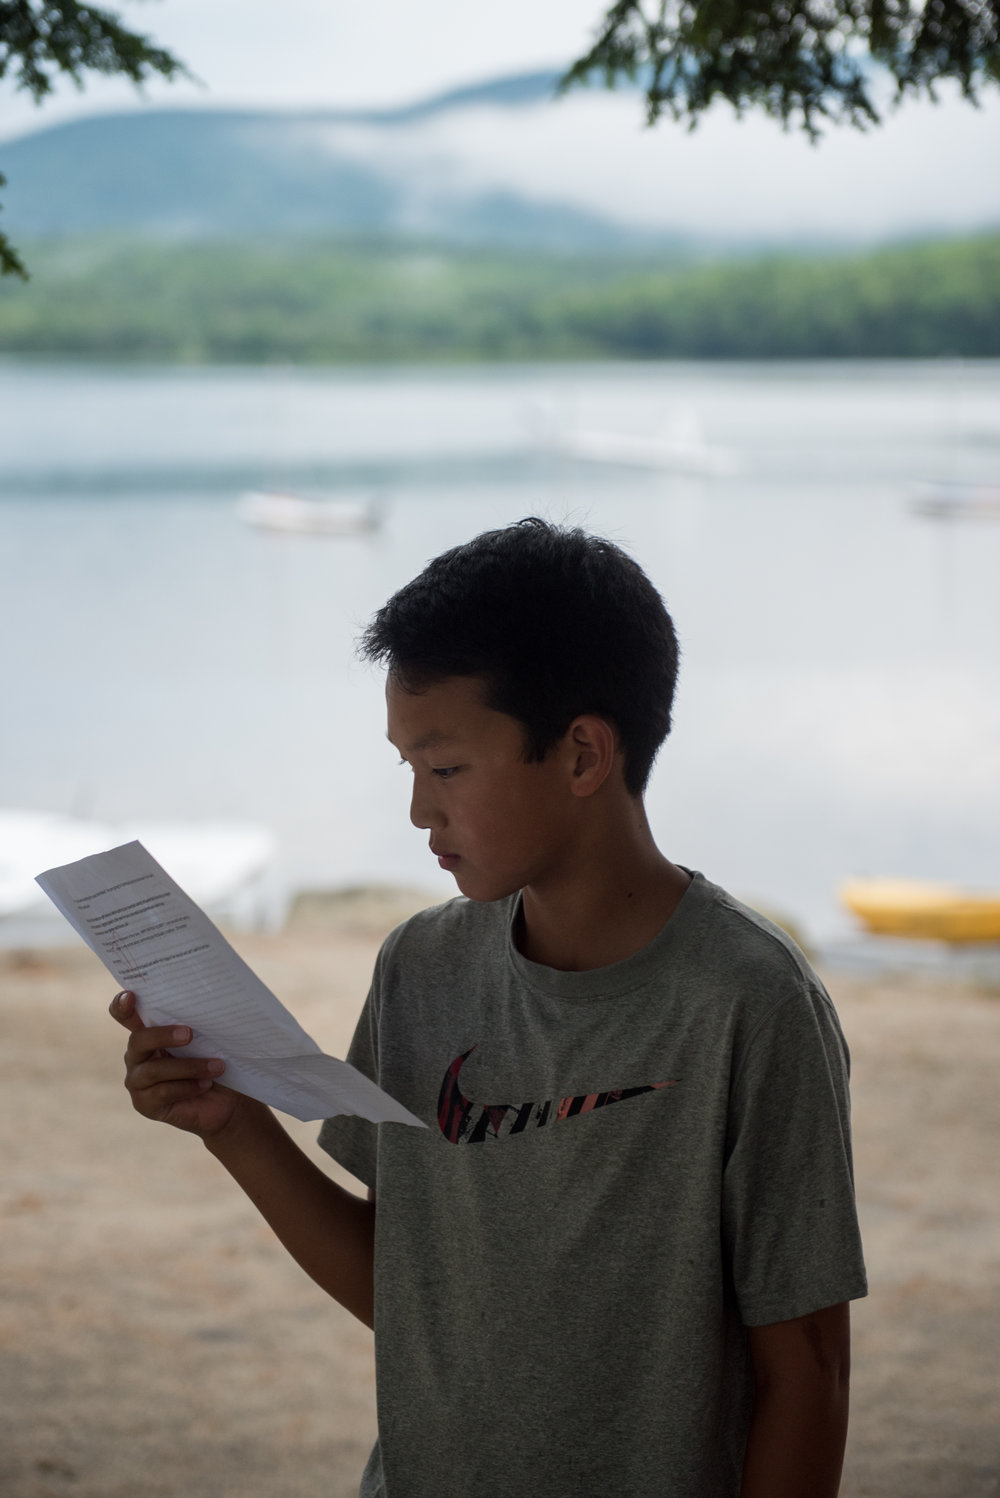 Orford, NH - 7/17/17 - Bobby Kwon, whose birthday was today, reads a letter during a rainy afternoon at Camp Moosilauke on Monday, July 17, 2017. Because of the weather, the power was temporarily knocked out but campers continued on with flash lights, hardly missing a beat. (Nicholas Pfosi for The Boston Globe) 